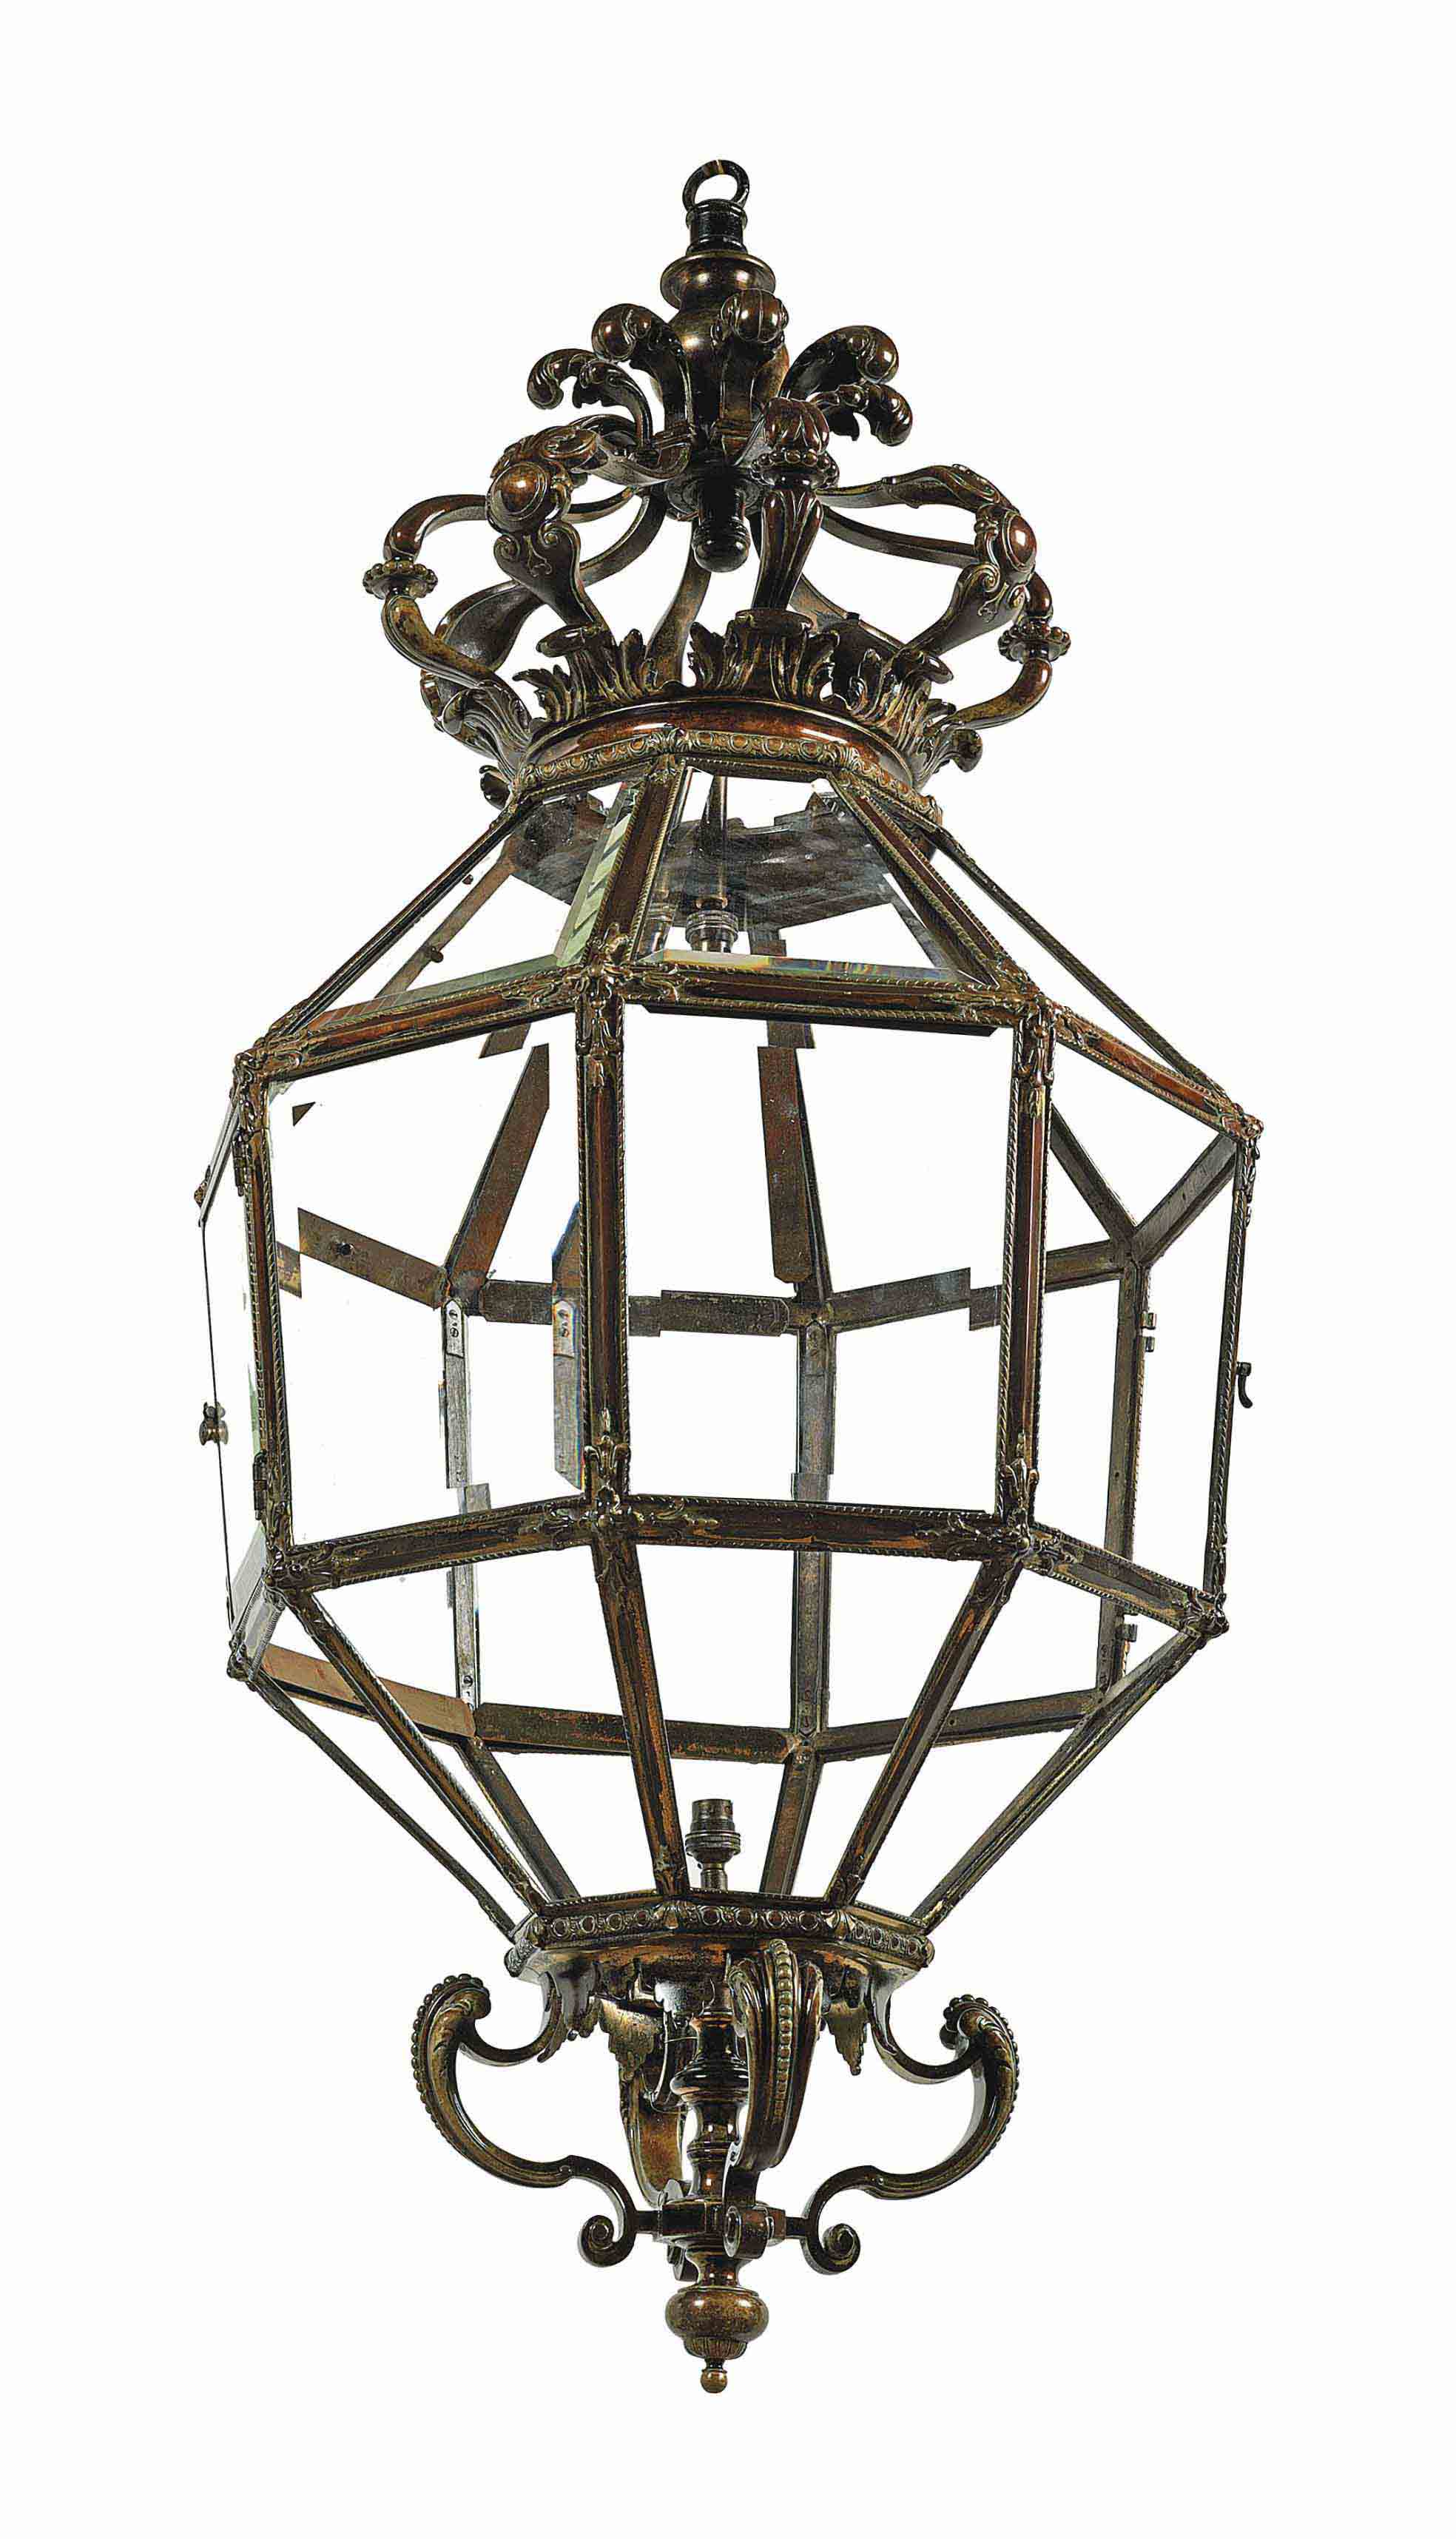 A LARGE LACQUERED BRONZE HANGING LANTERN